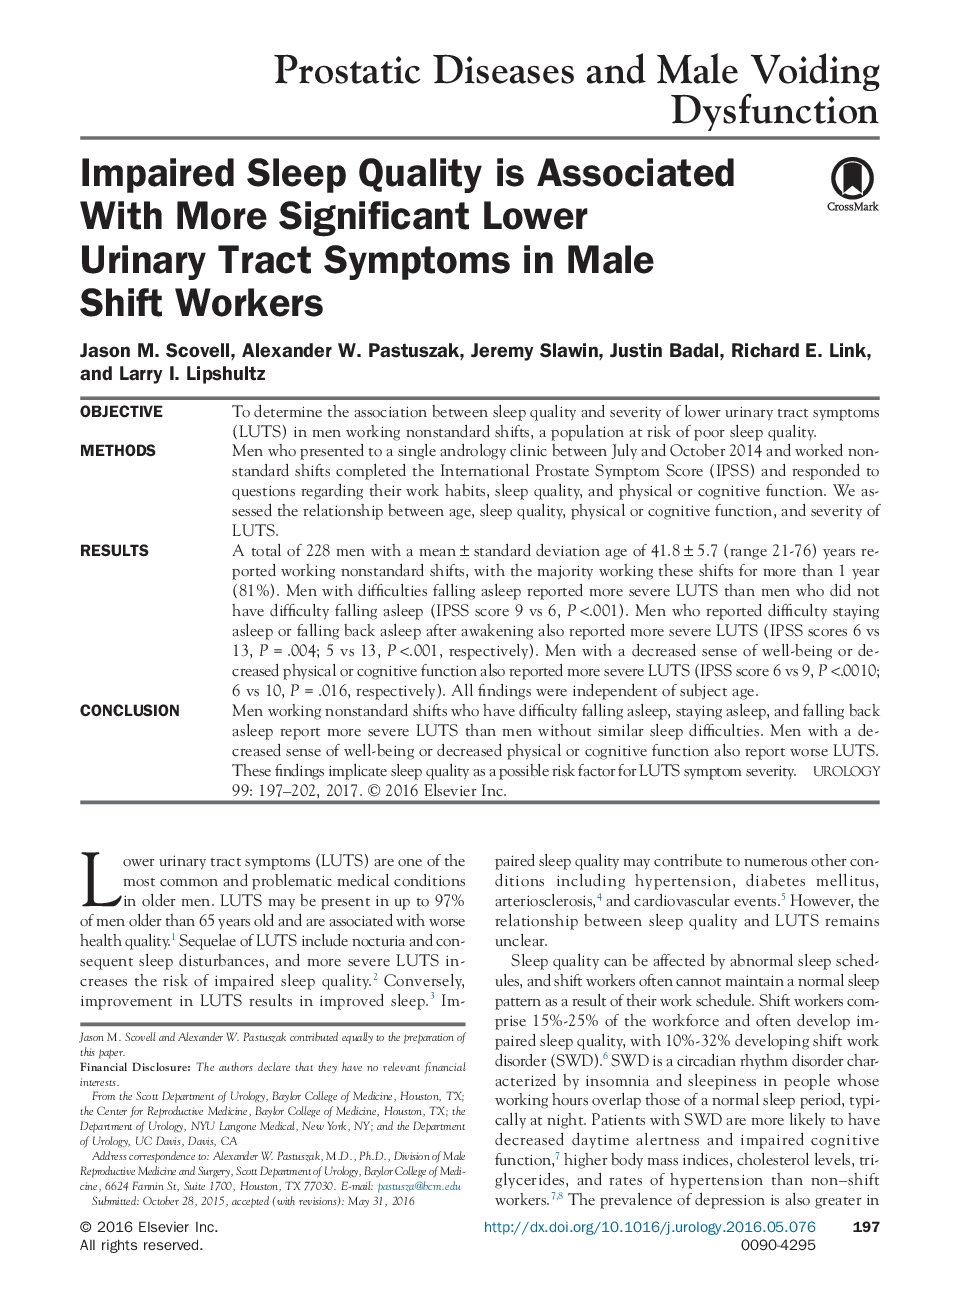 Impaired Sleep Quality is Associated With More Significant Lower Urinary Tract Symptoms in Male Shift Workers